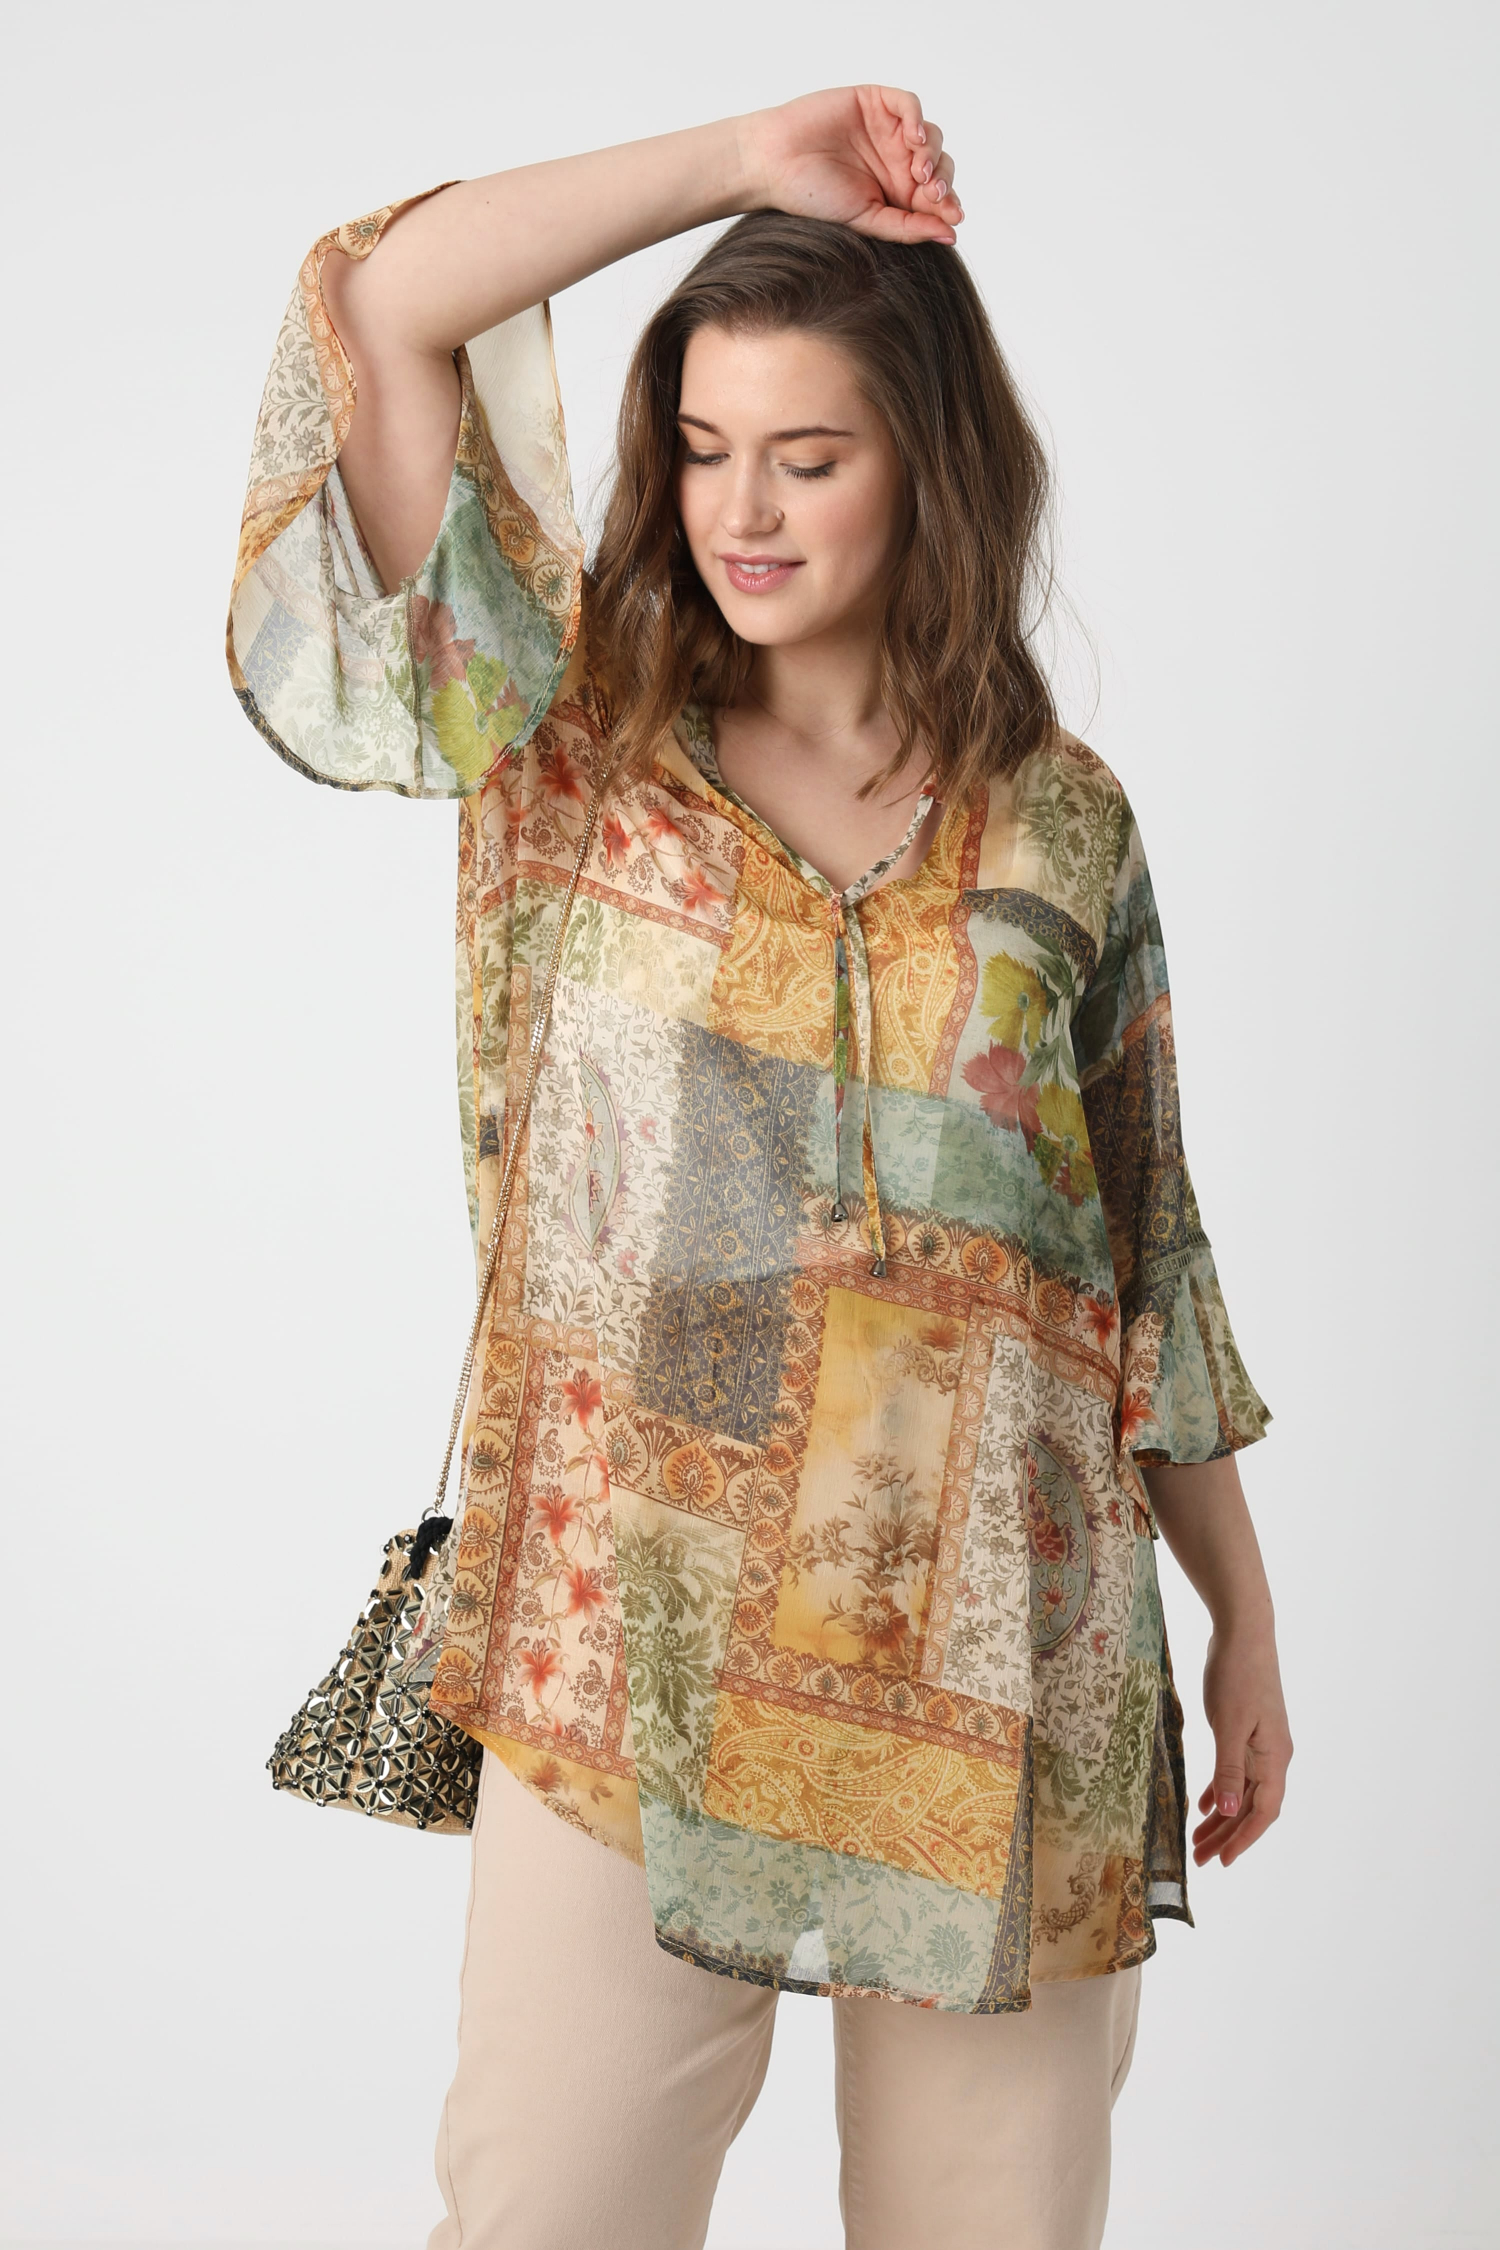 Printed veil tunic with tank top (expedition 25/31 March)